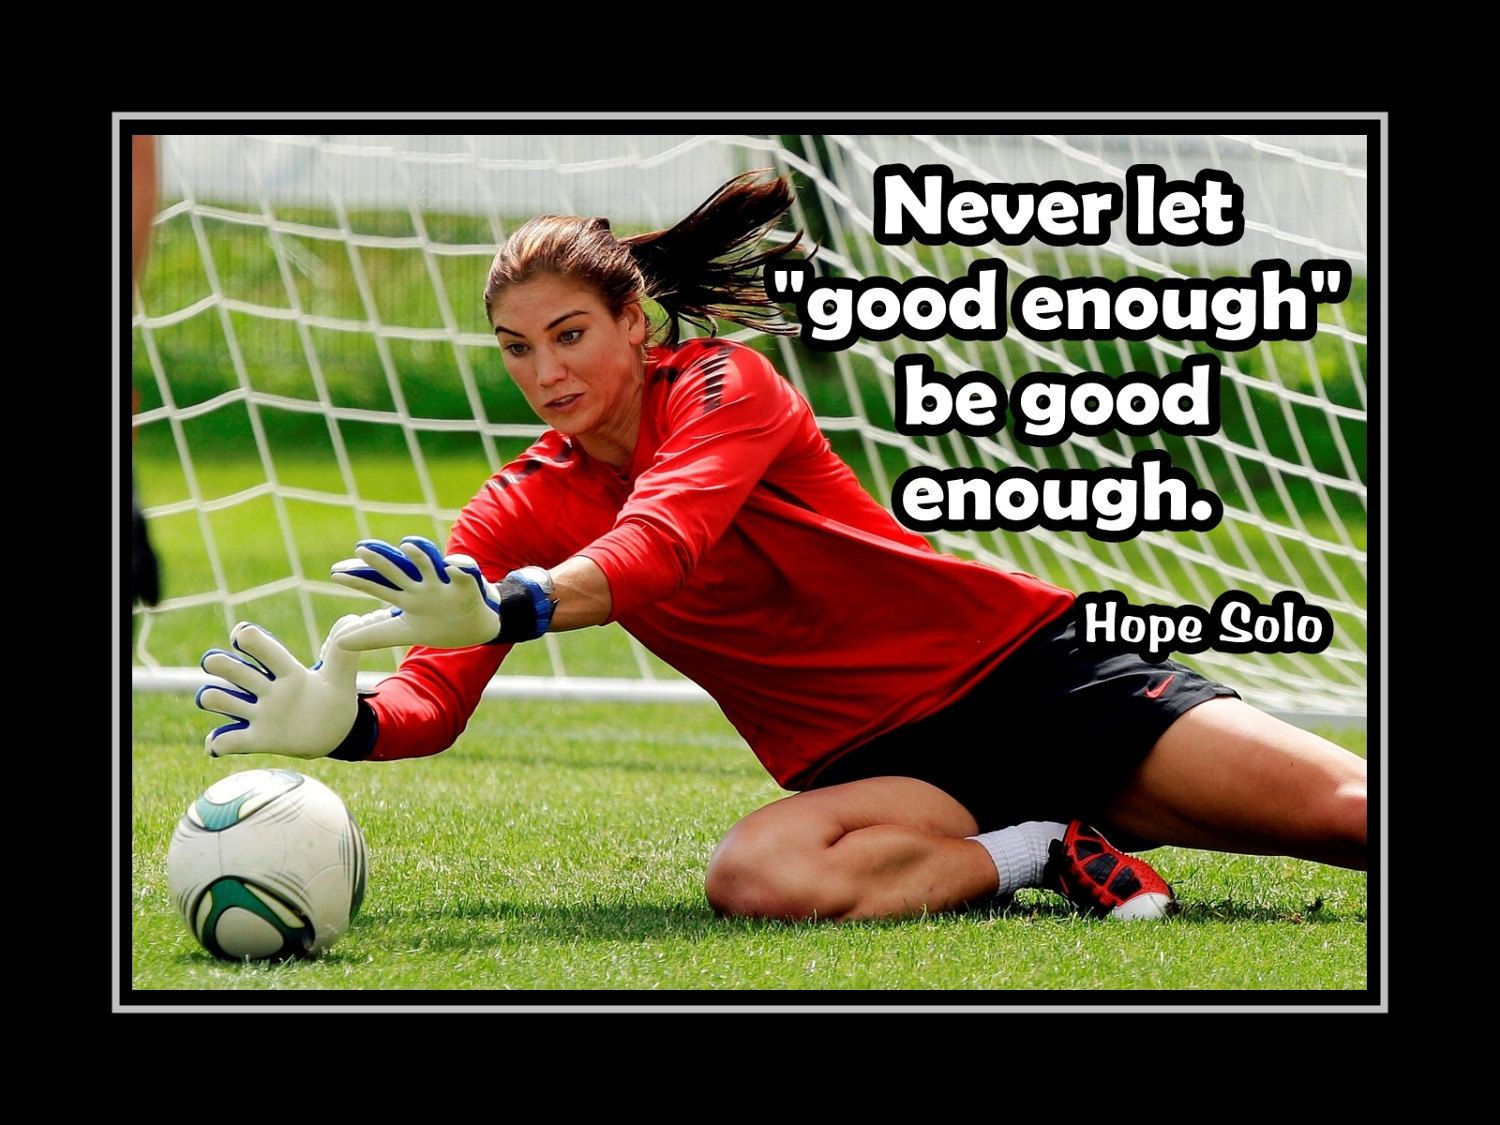 Soccer Motivation Quote Wall Art, Best Friend Daughter Birthday Gift for Women Champion Poster Pride Wall Decor, Hope Solo, 8×10″, 16×20″